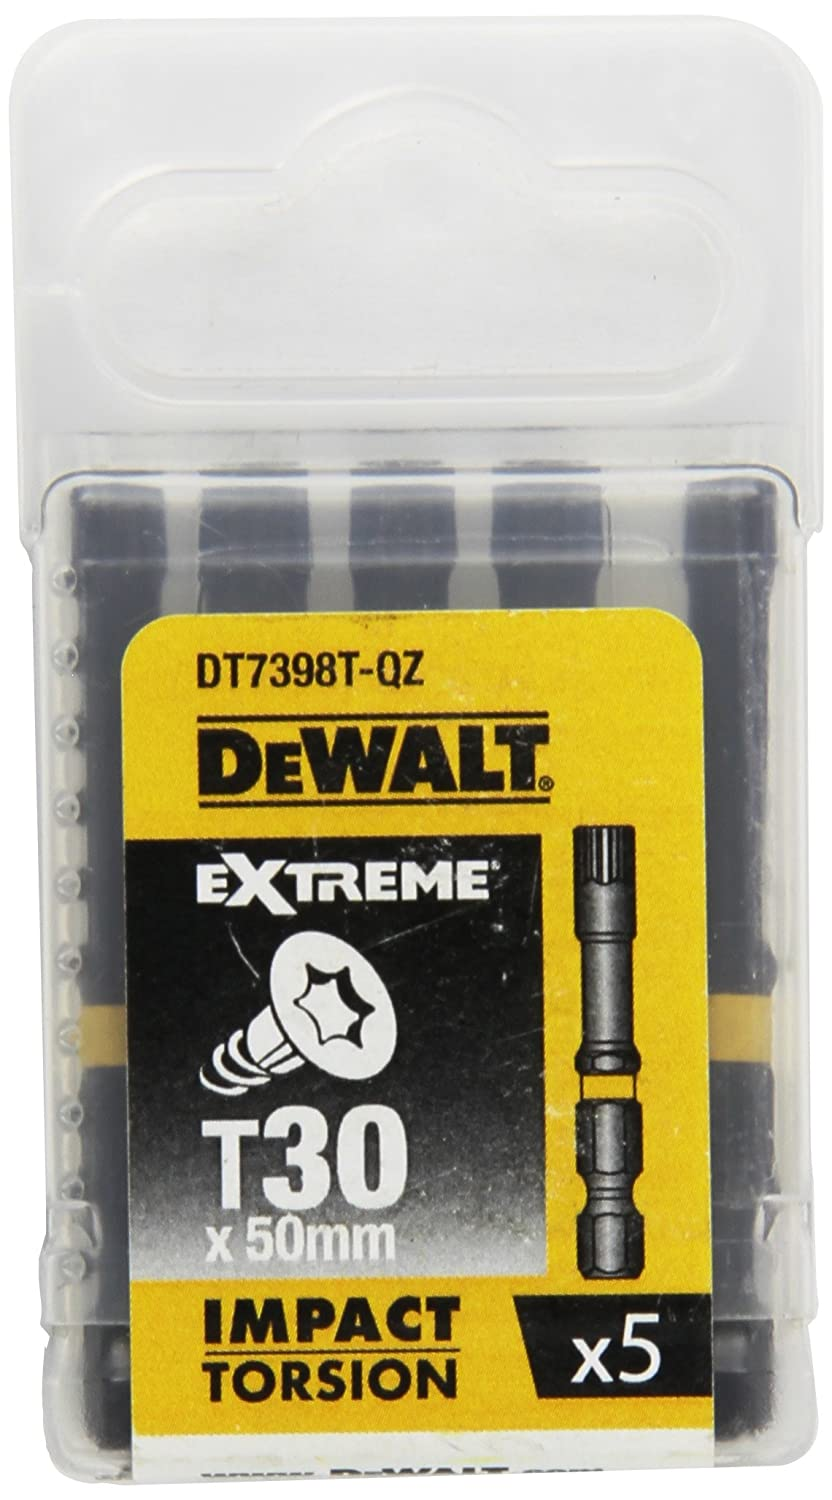 DeWalt  DT7398T-QZ, T30 Extreme Impact Torsion Bits, Pack of 5, 50  mm 50 mm